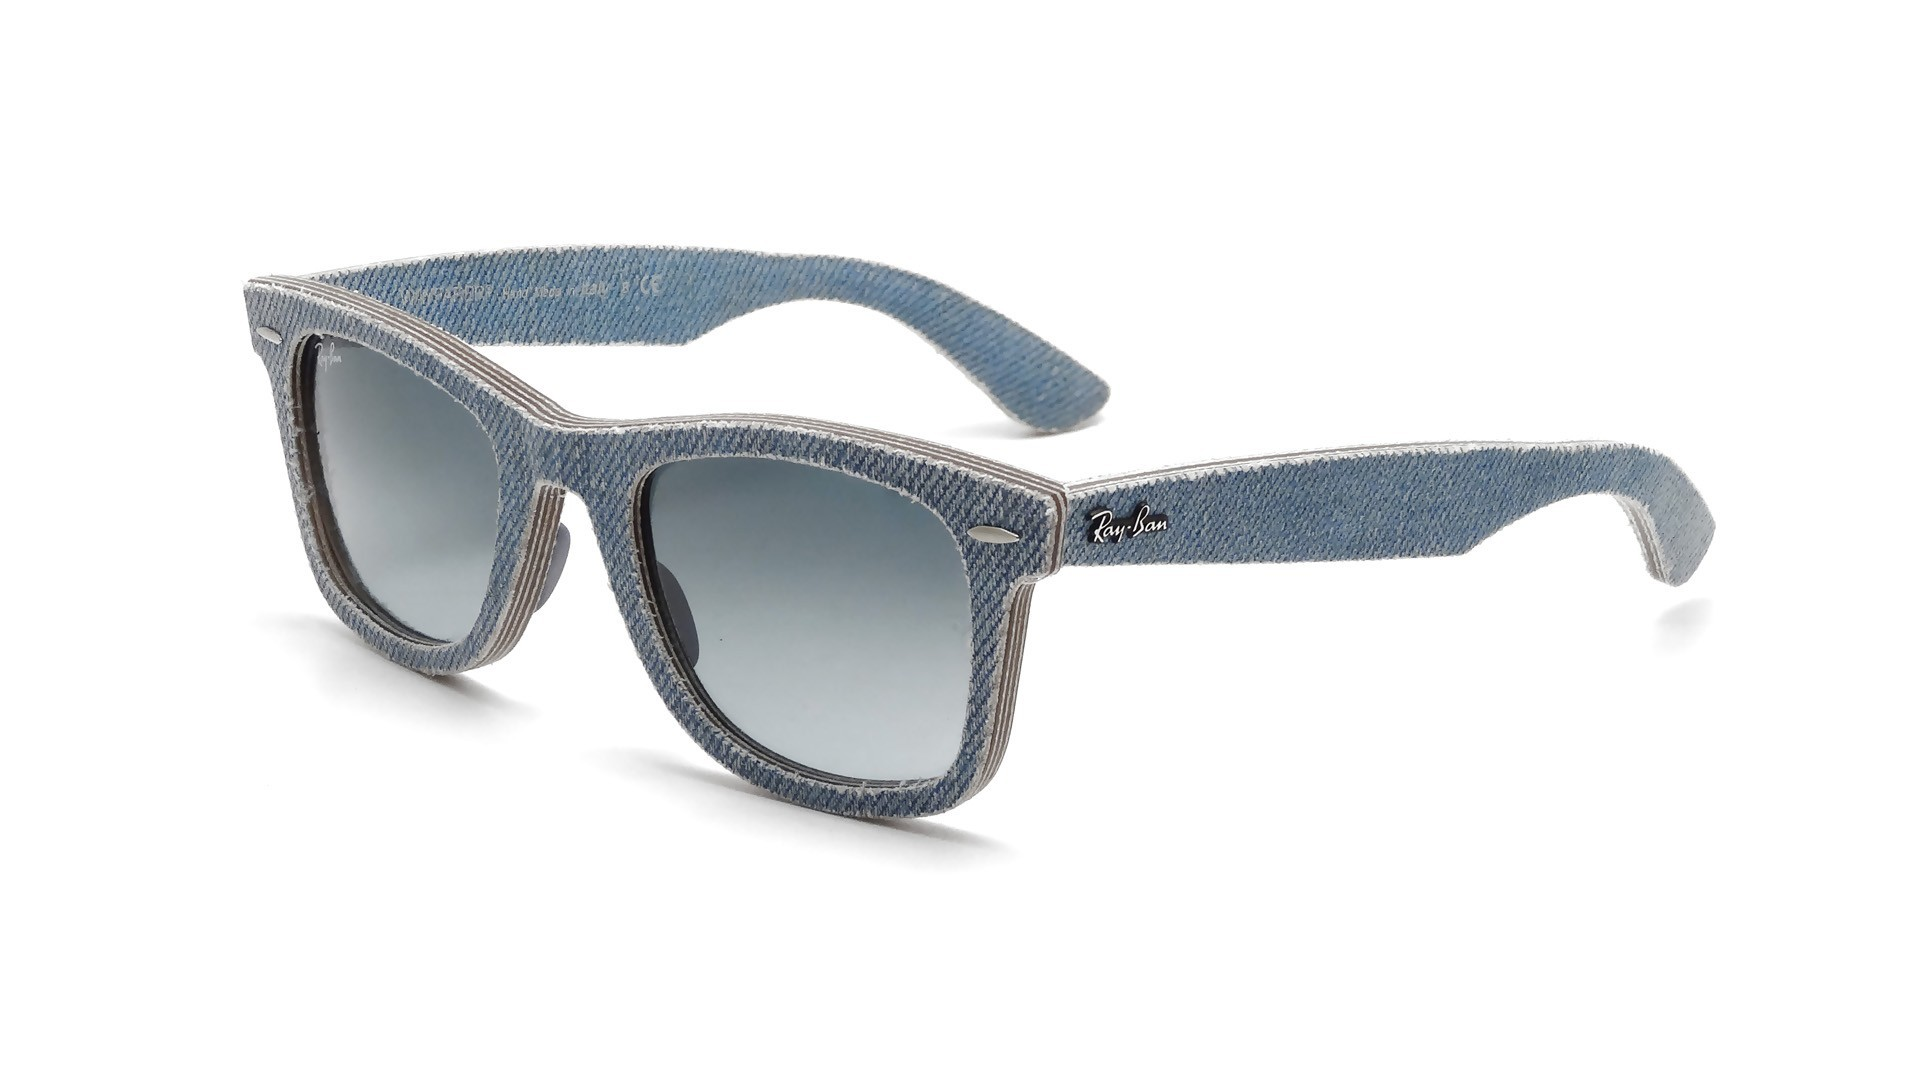 a65deced65 Γυαλιά Hλίου Ray-Ban DENIM WAYFARER RB 2140 1164 4M